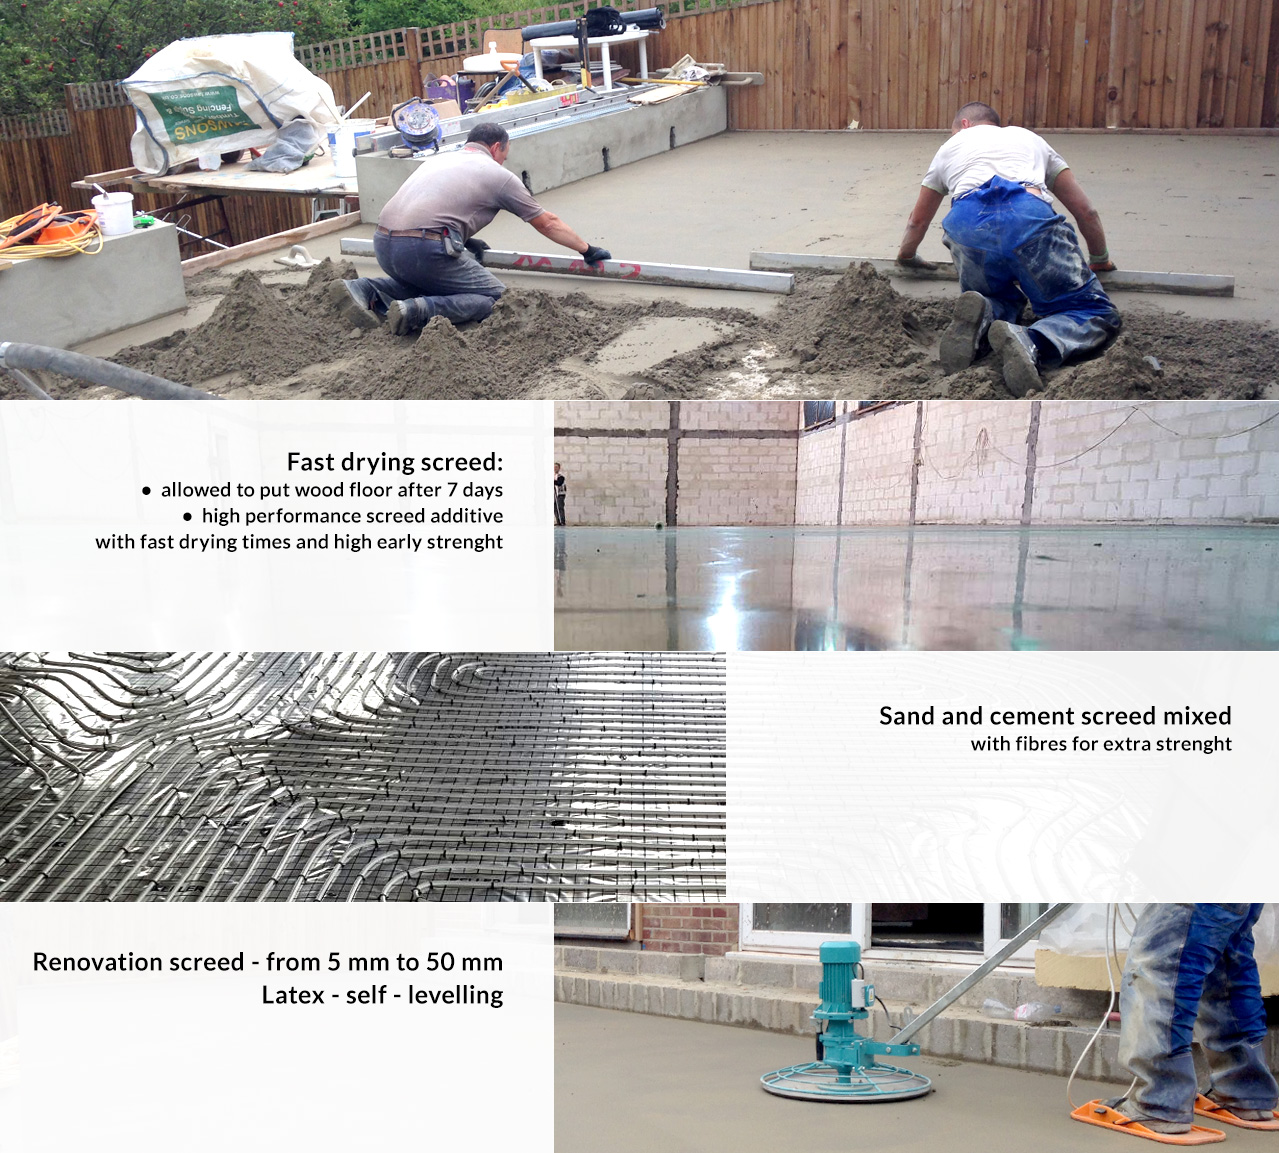 Fast drying screed: allowed to put wood floor after 7 days, high performance screed additive with fast drying times and high early strenght. Sand and cement screed mixed with fibres for extra strenght. Renovation screed - from 5 mm to 50 mm. Latex - self - levelling